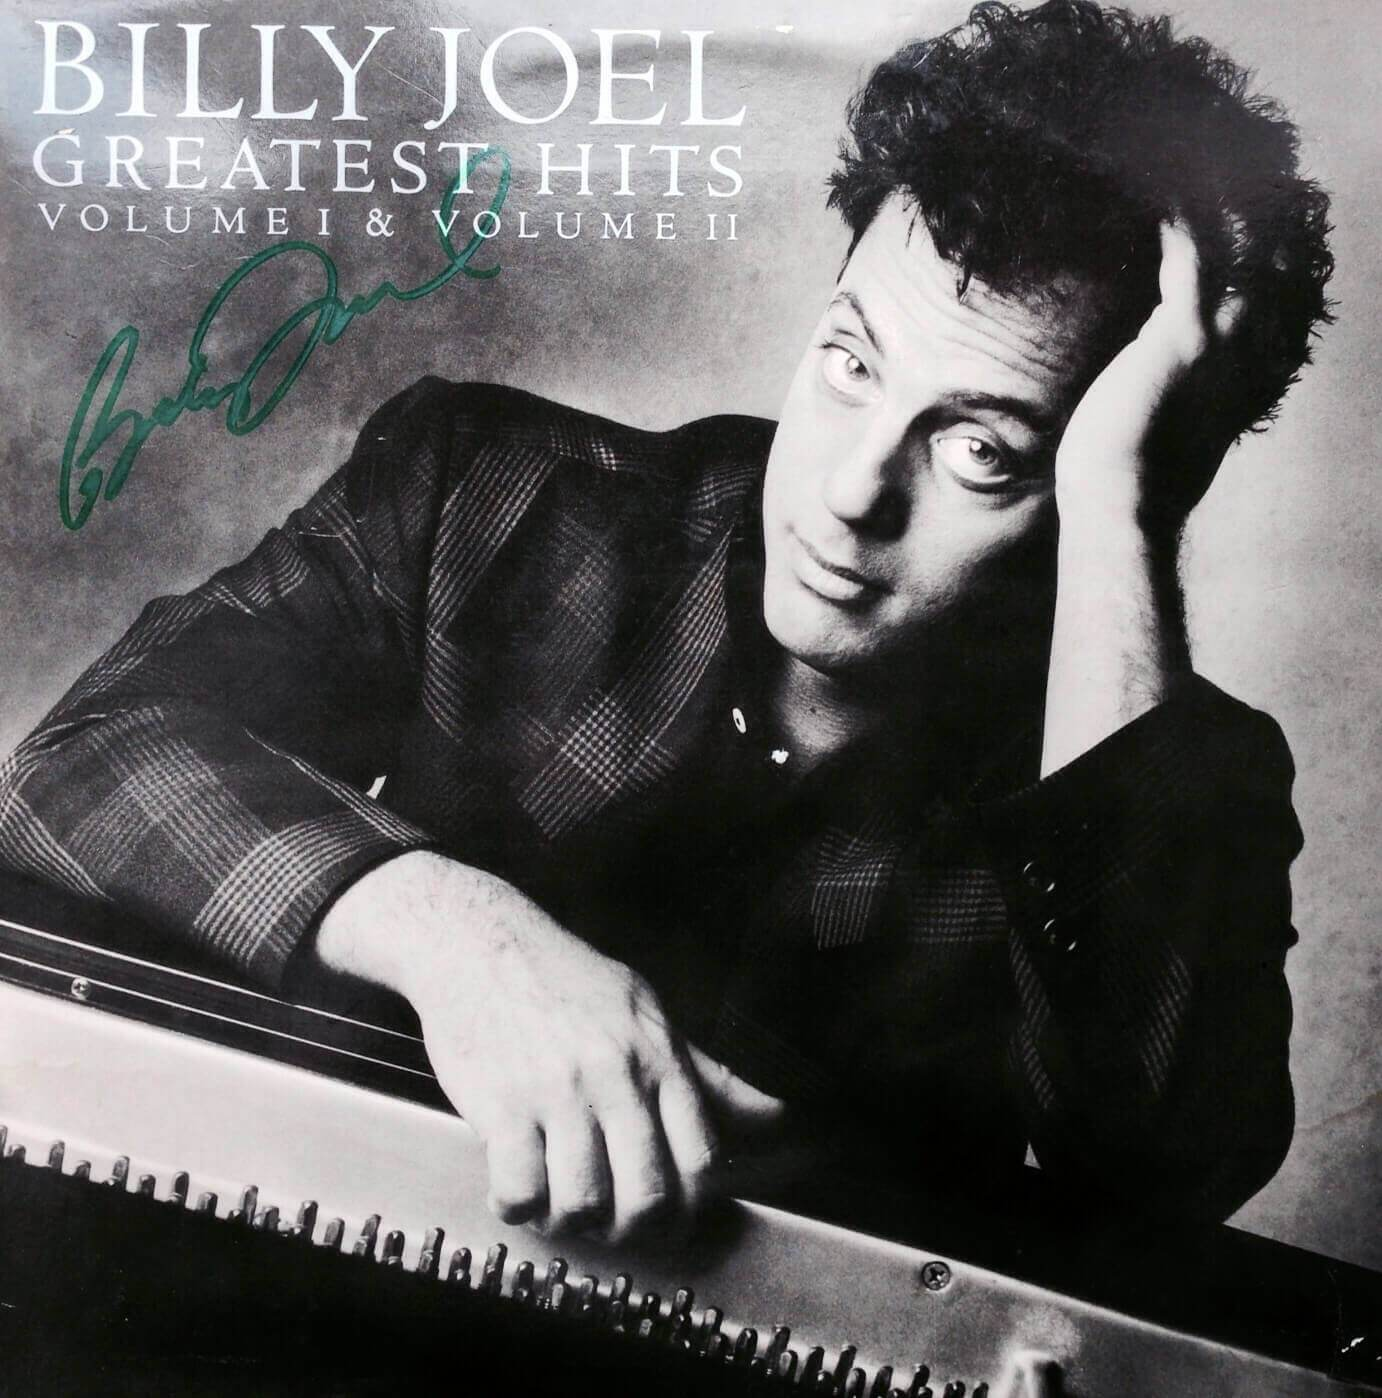 Michael hutchence autograph hand signed listen like thieves lp billy joel hand signed greatest hits volume i volume ii lp17500 nvjuhfo Gallery